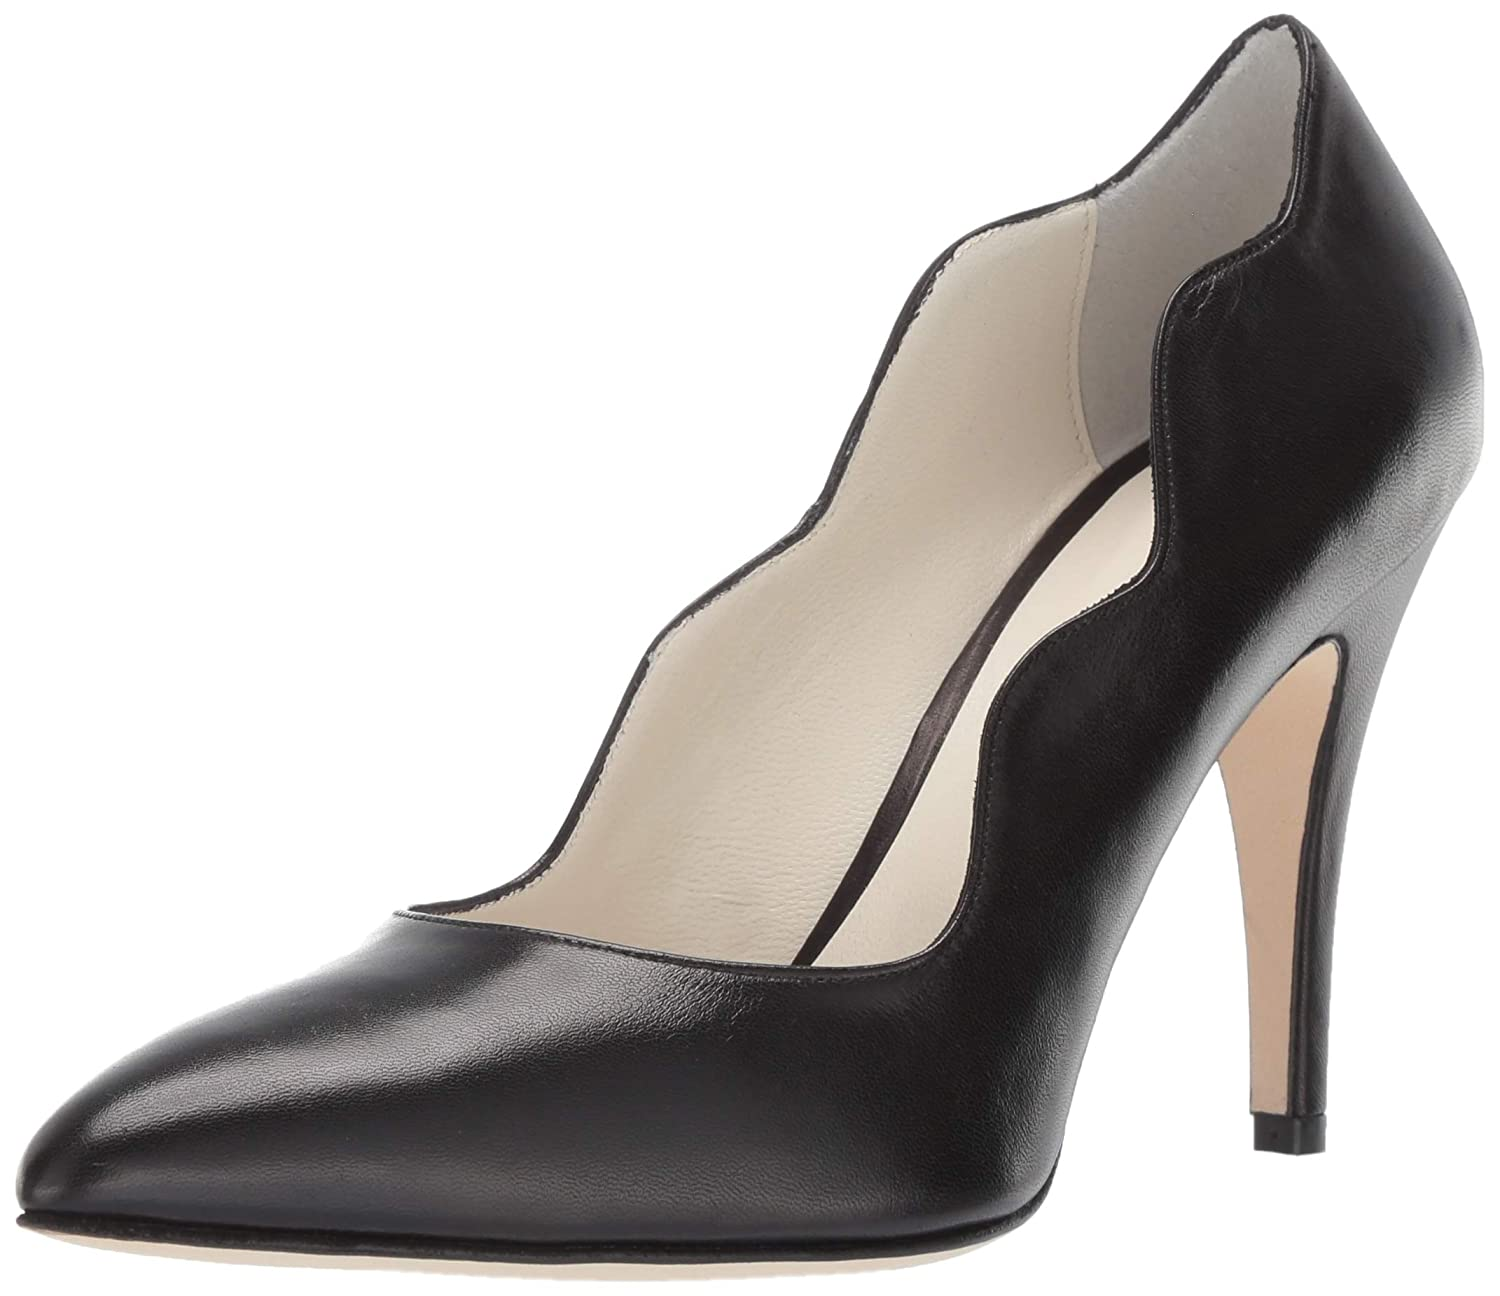 Black Bettye Muller Womens Gentry Pump